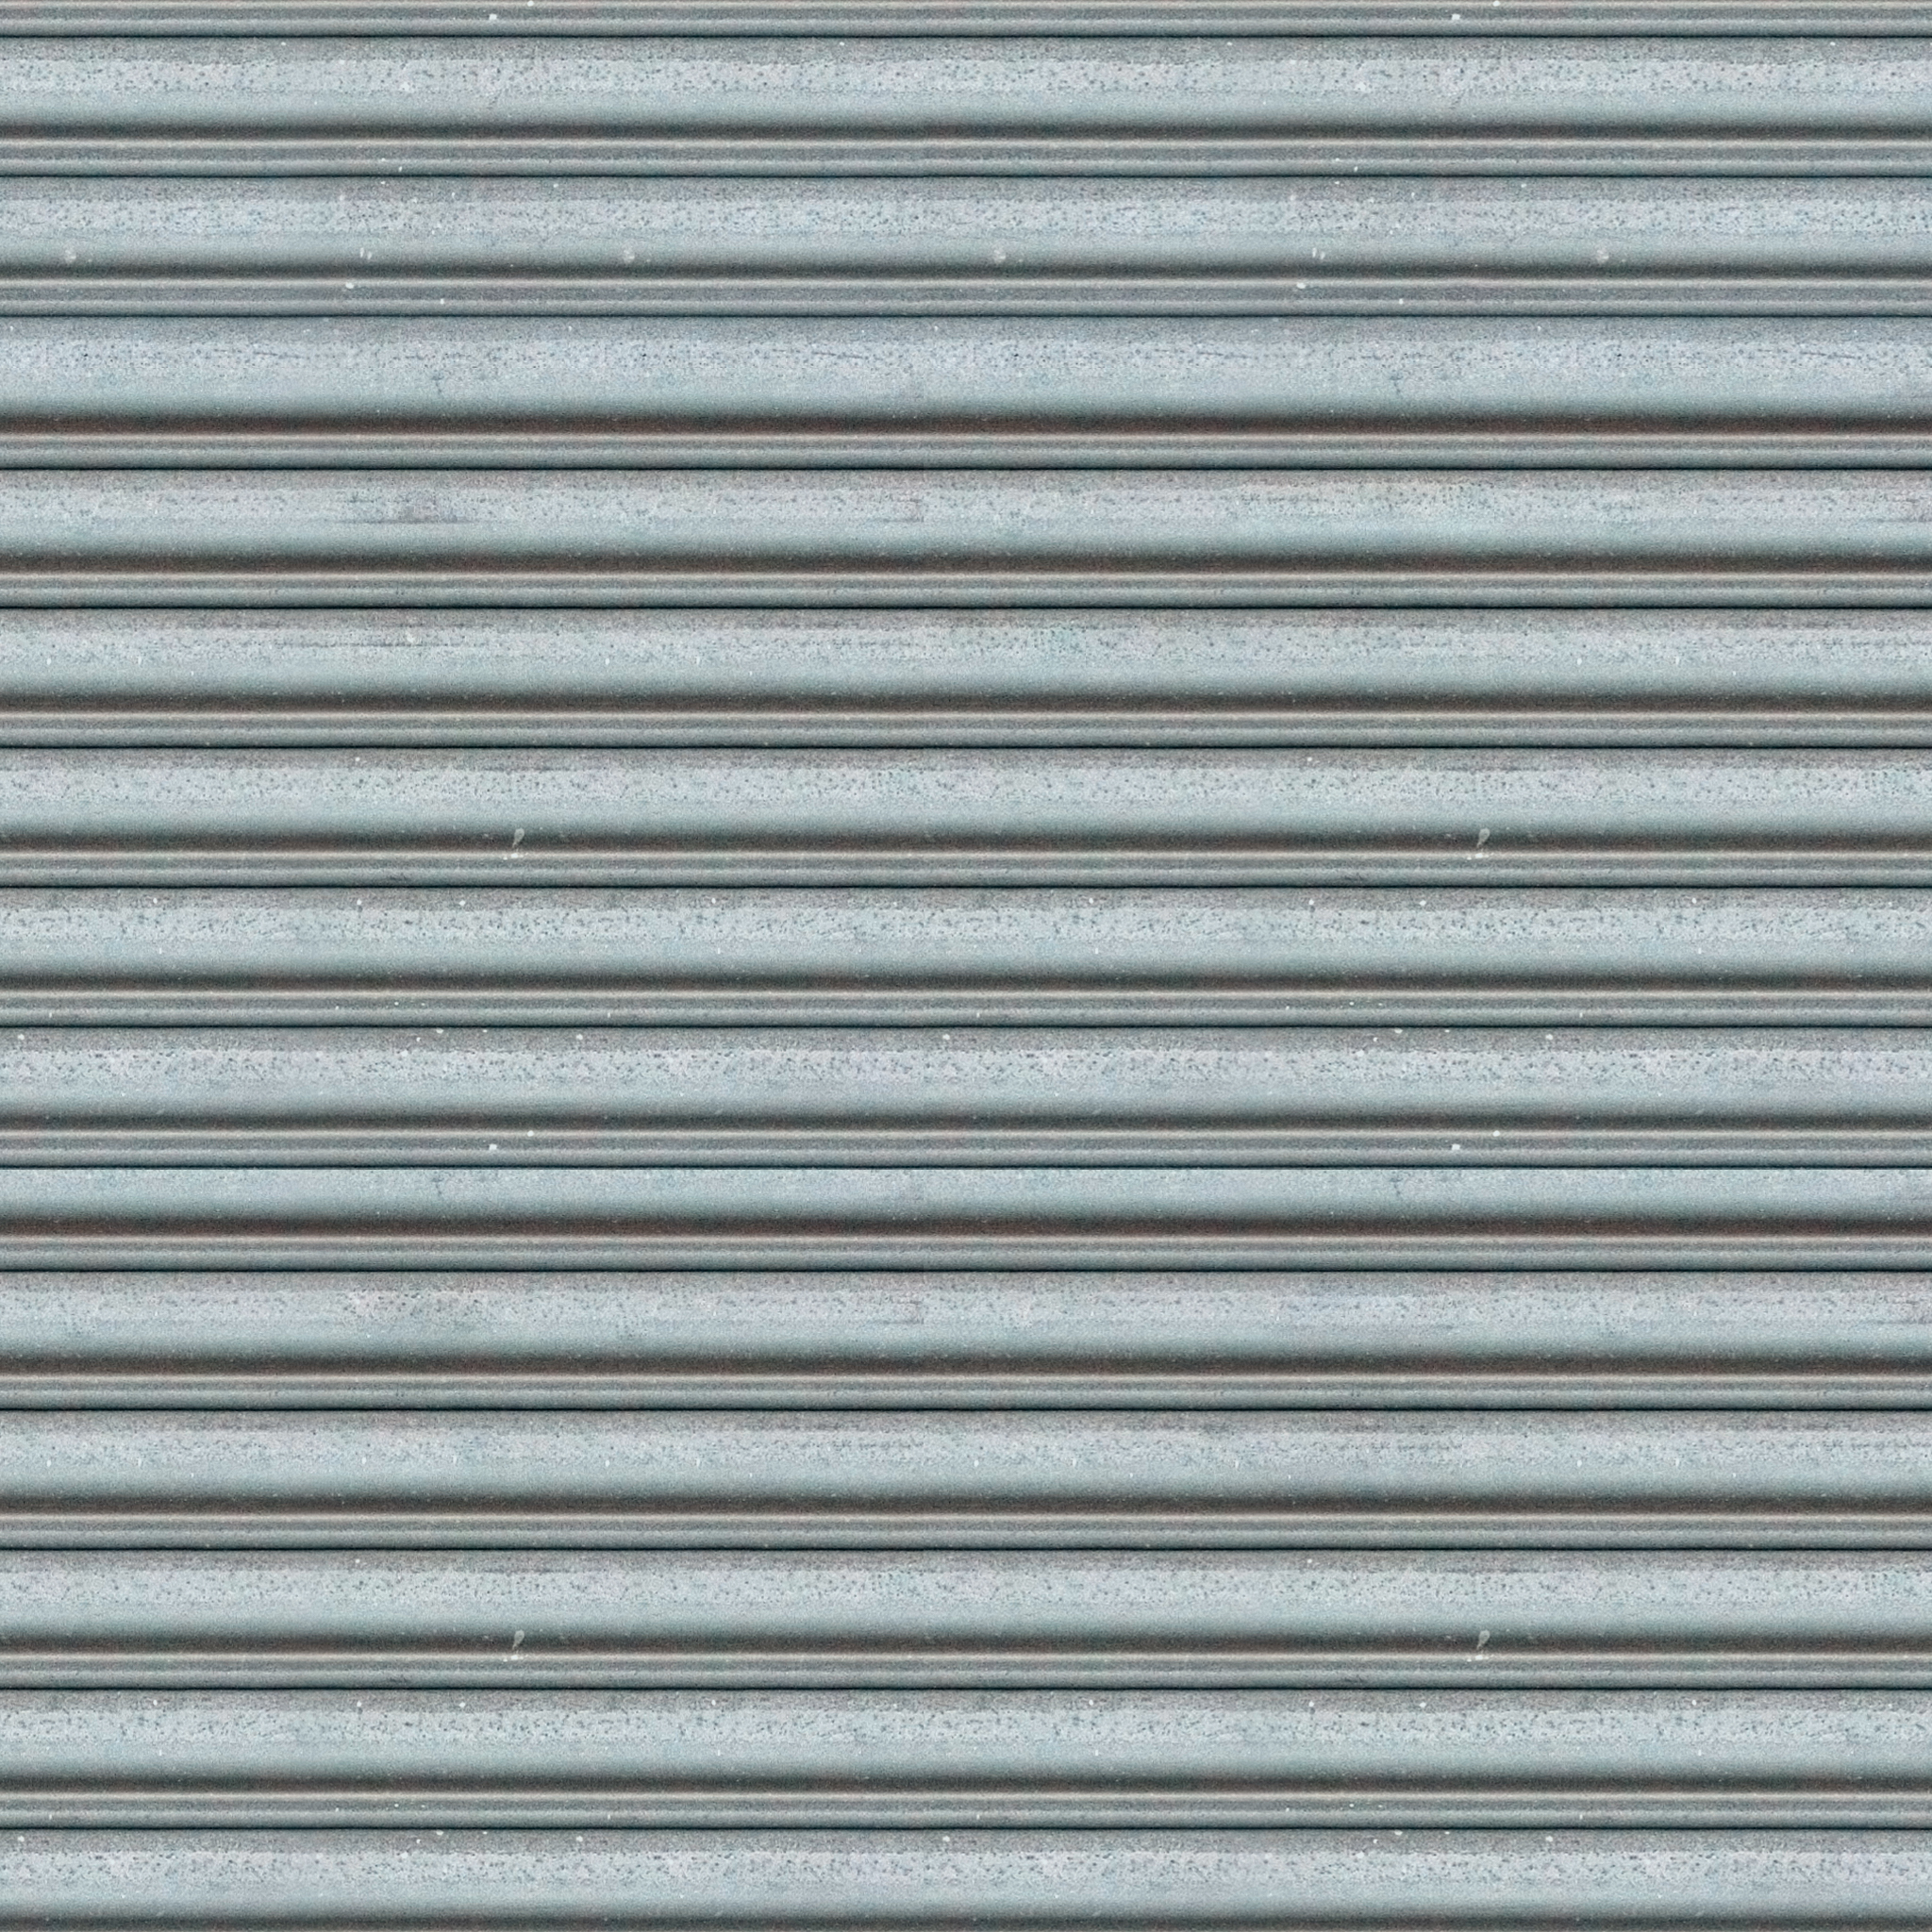 Grey Corrugated Siding.jpg